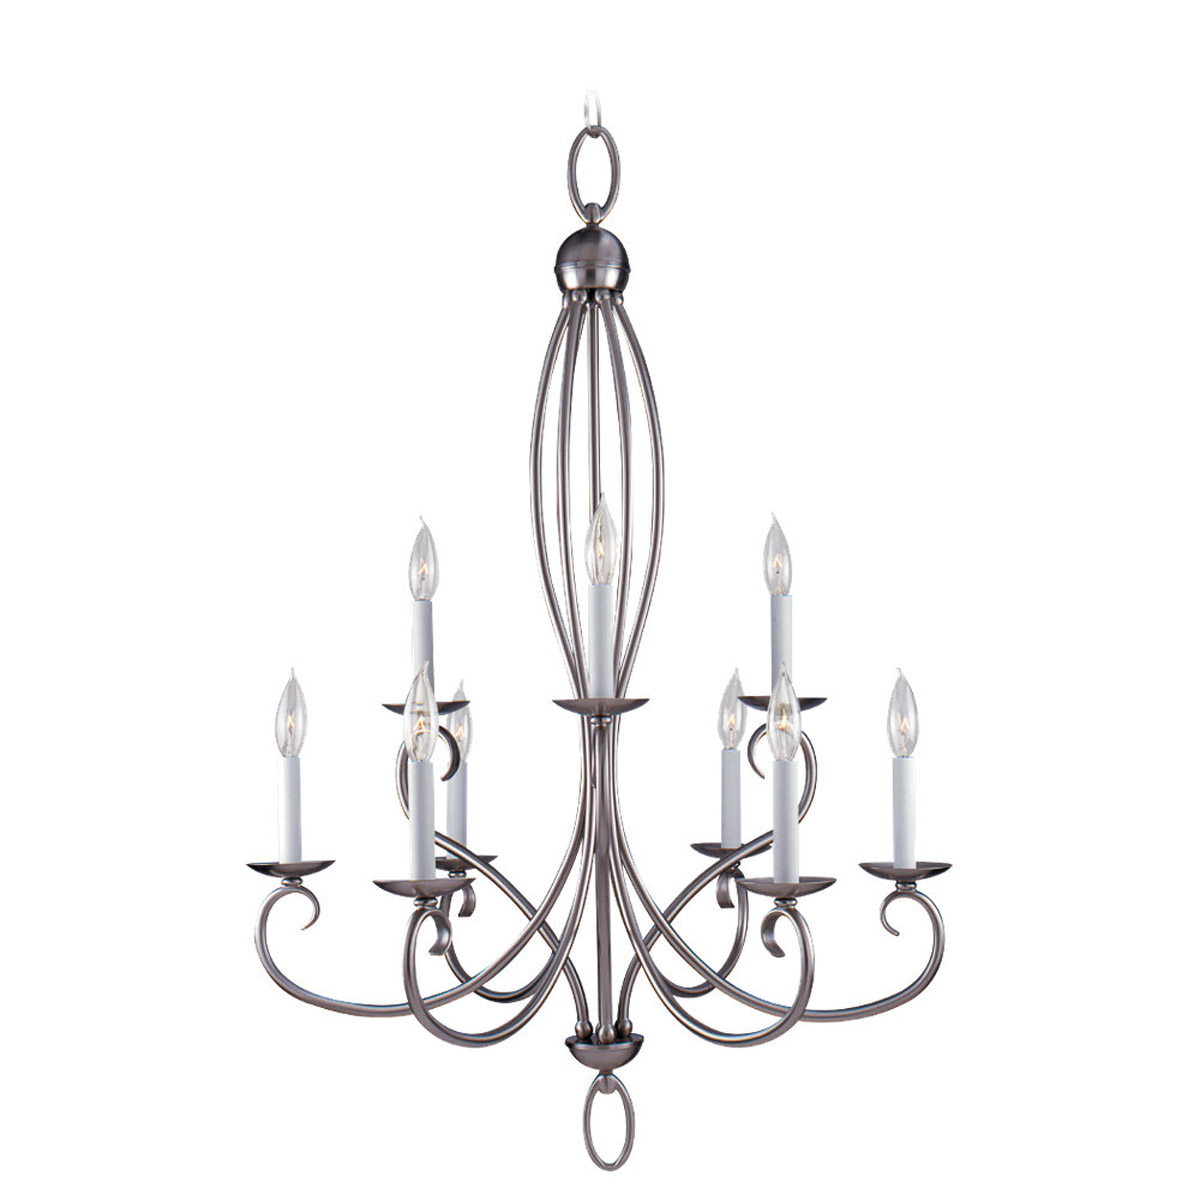 Sea Gull Lighting Pemberton 9 Light Chandelier in Brushed Nickel 31075-962